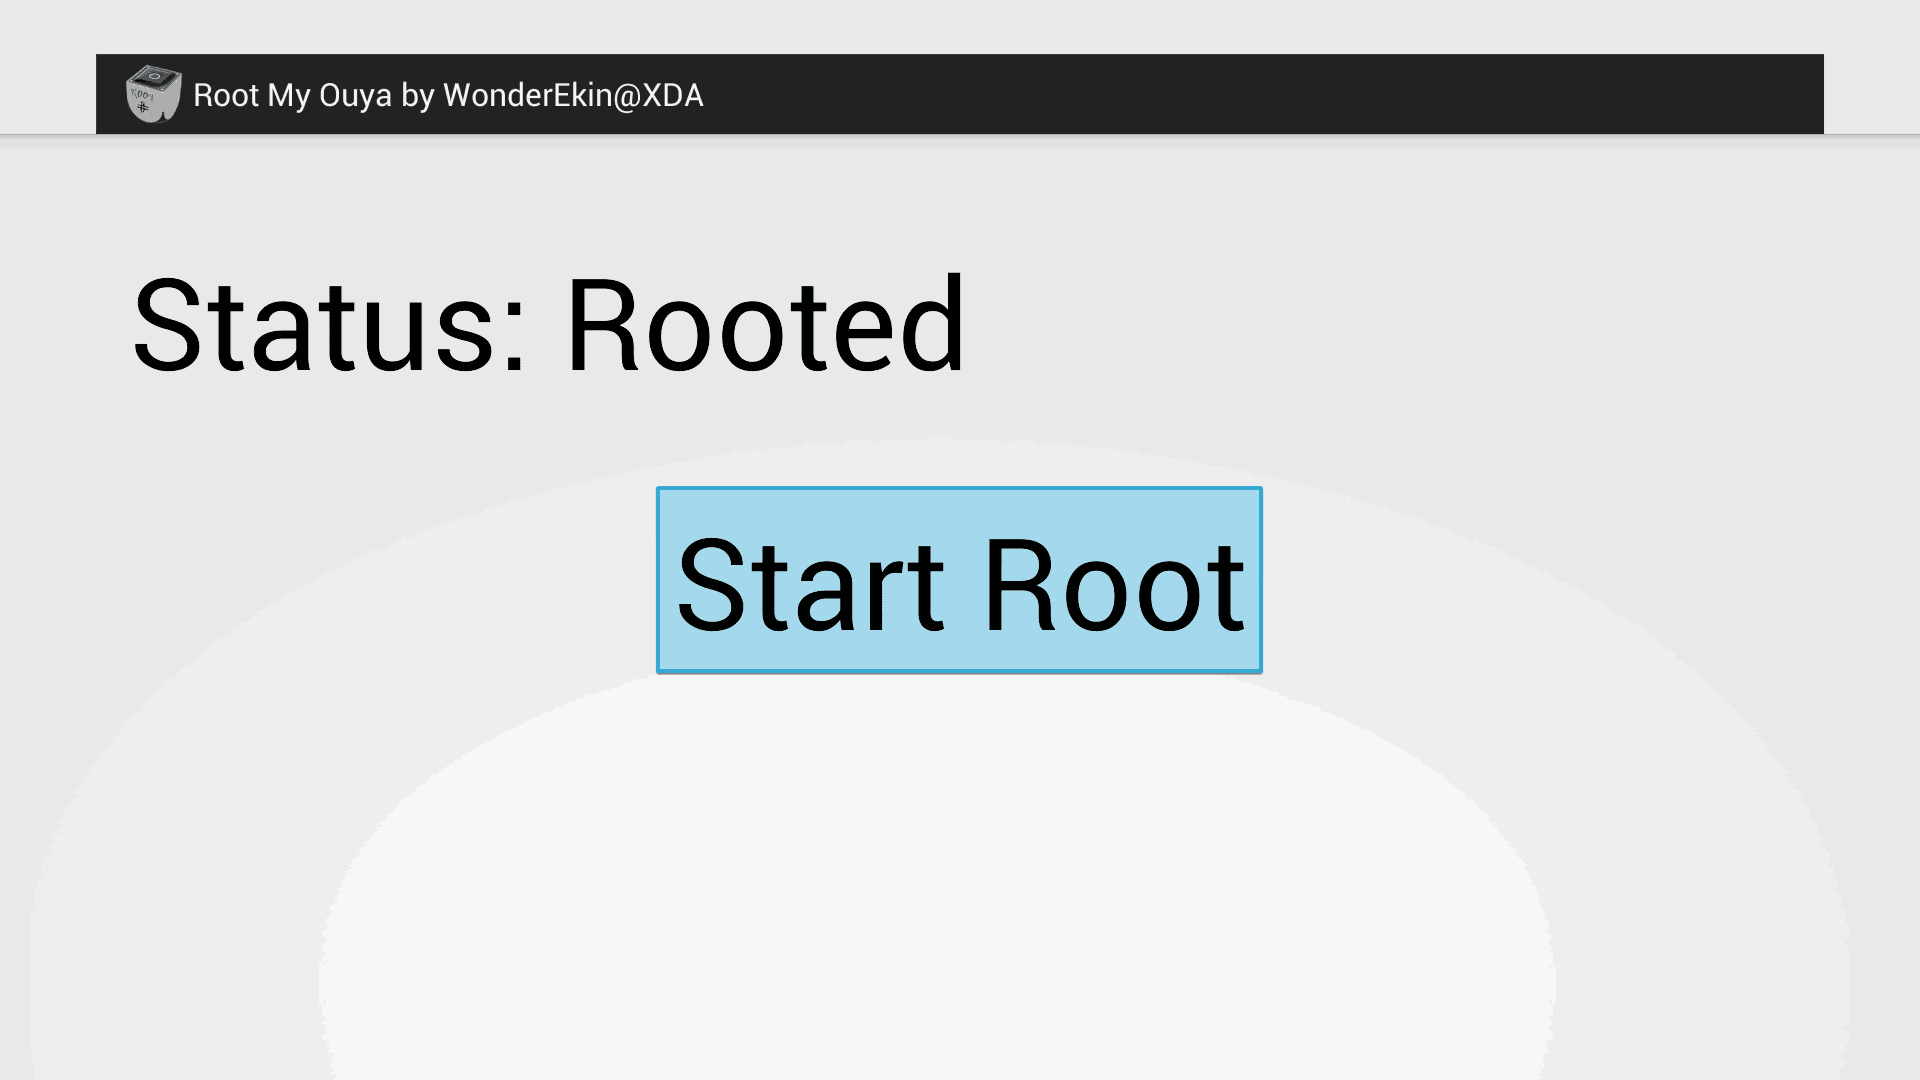 Root the Ouya - Start the Root